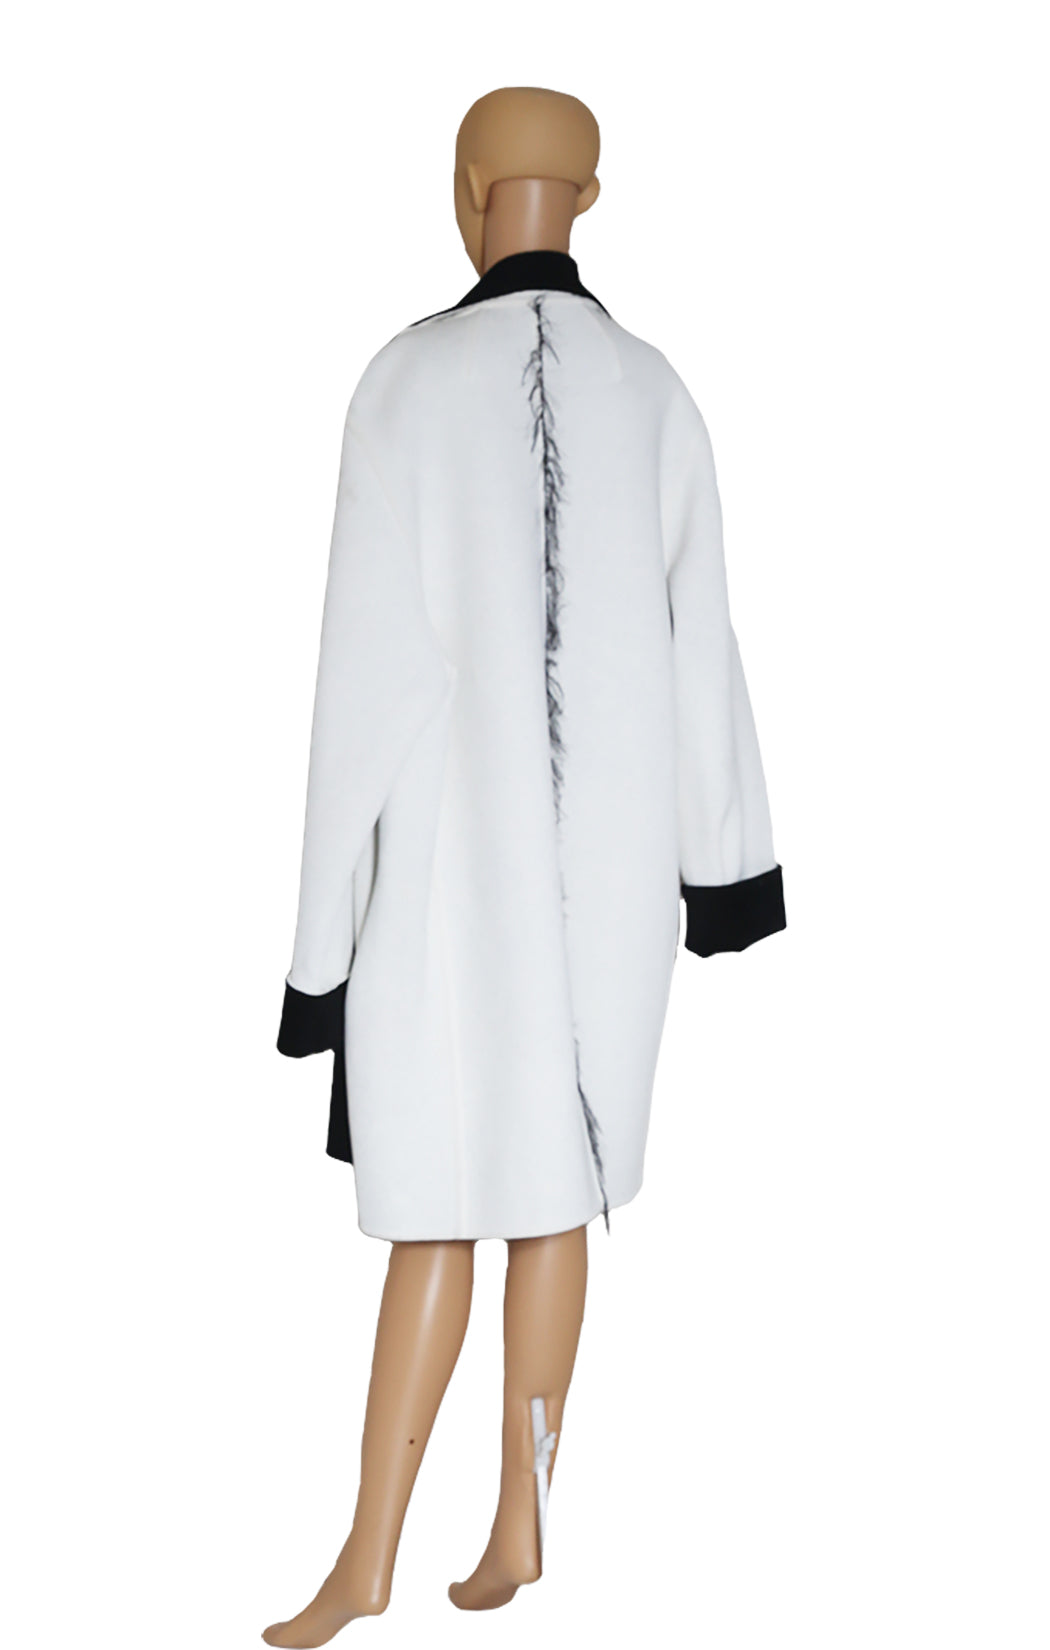 Back view of CELINE Ivory and Black Coat with Tags